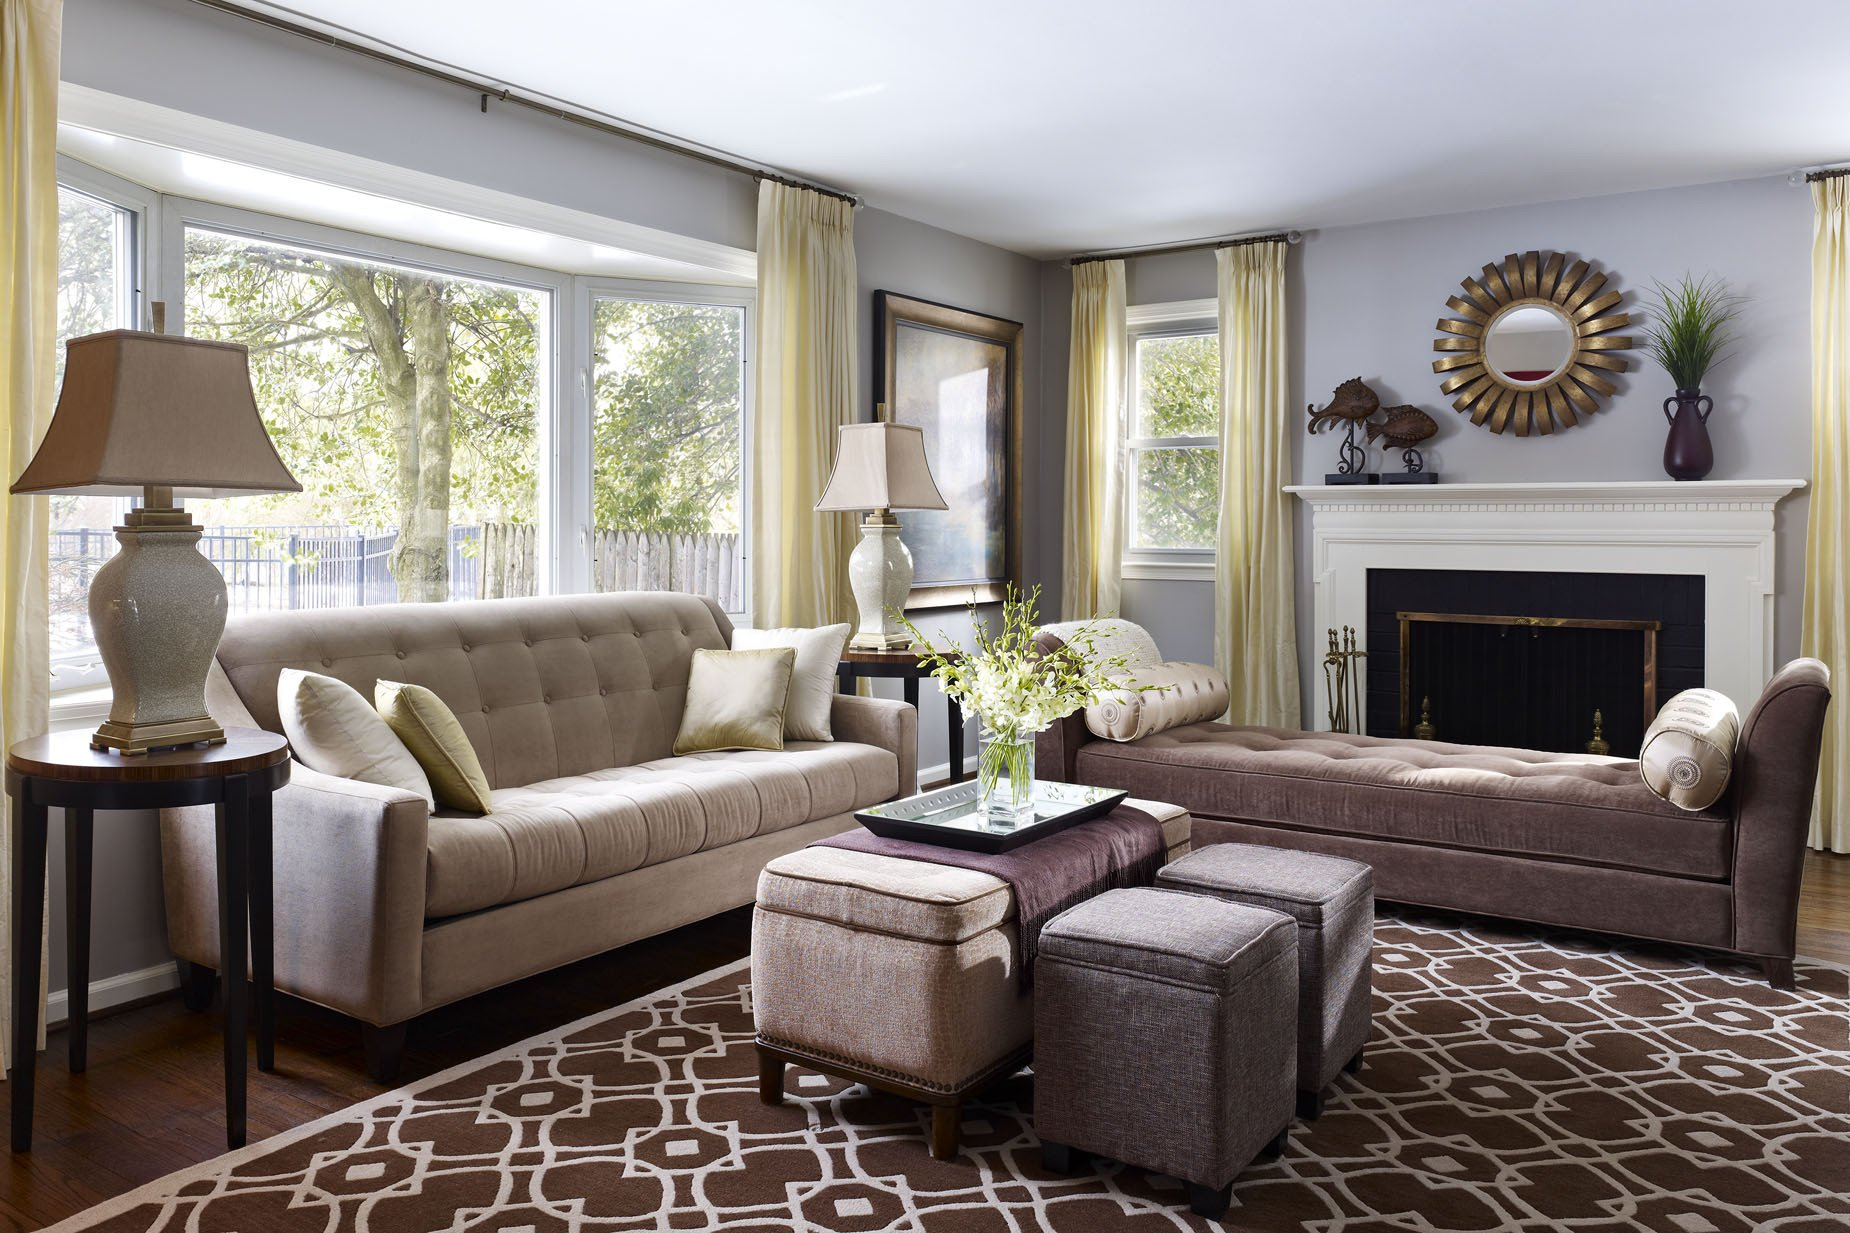 Modern Transitional Living Room Decorating Ideas What's Your Design Style is It Transitional